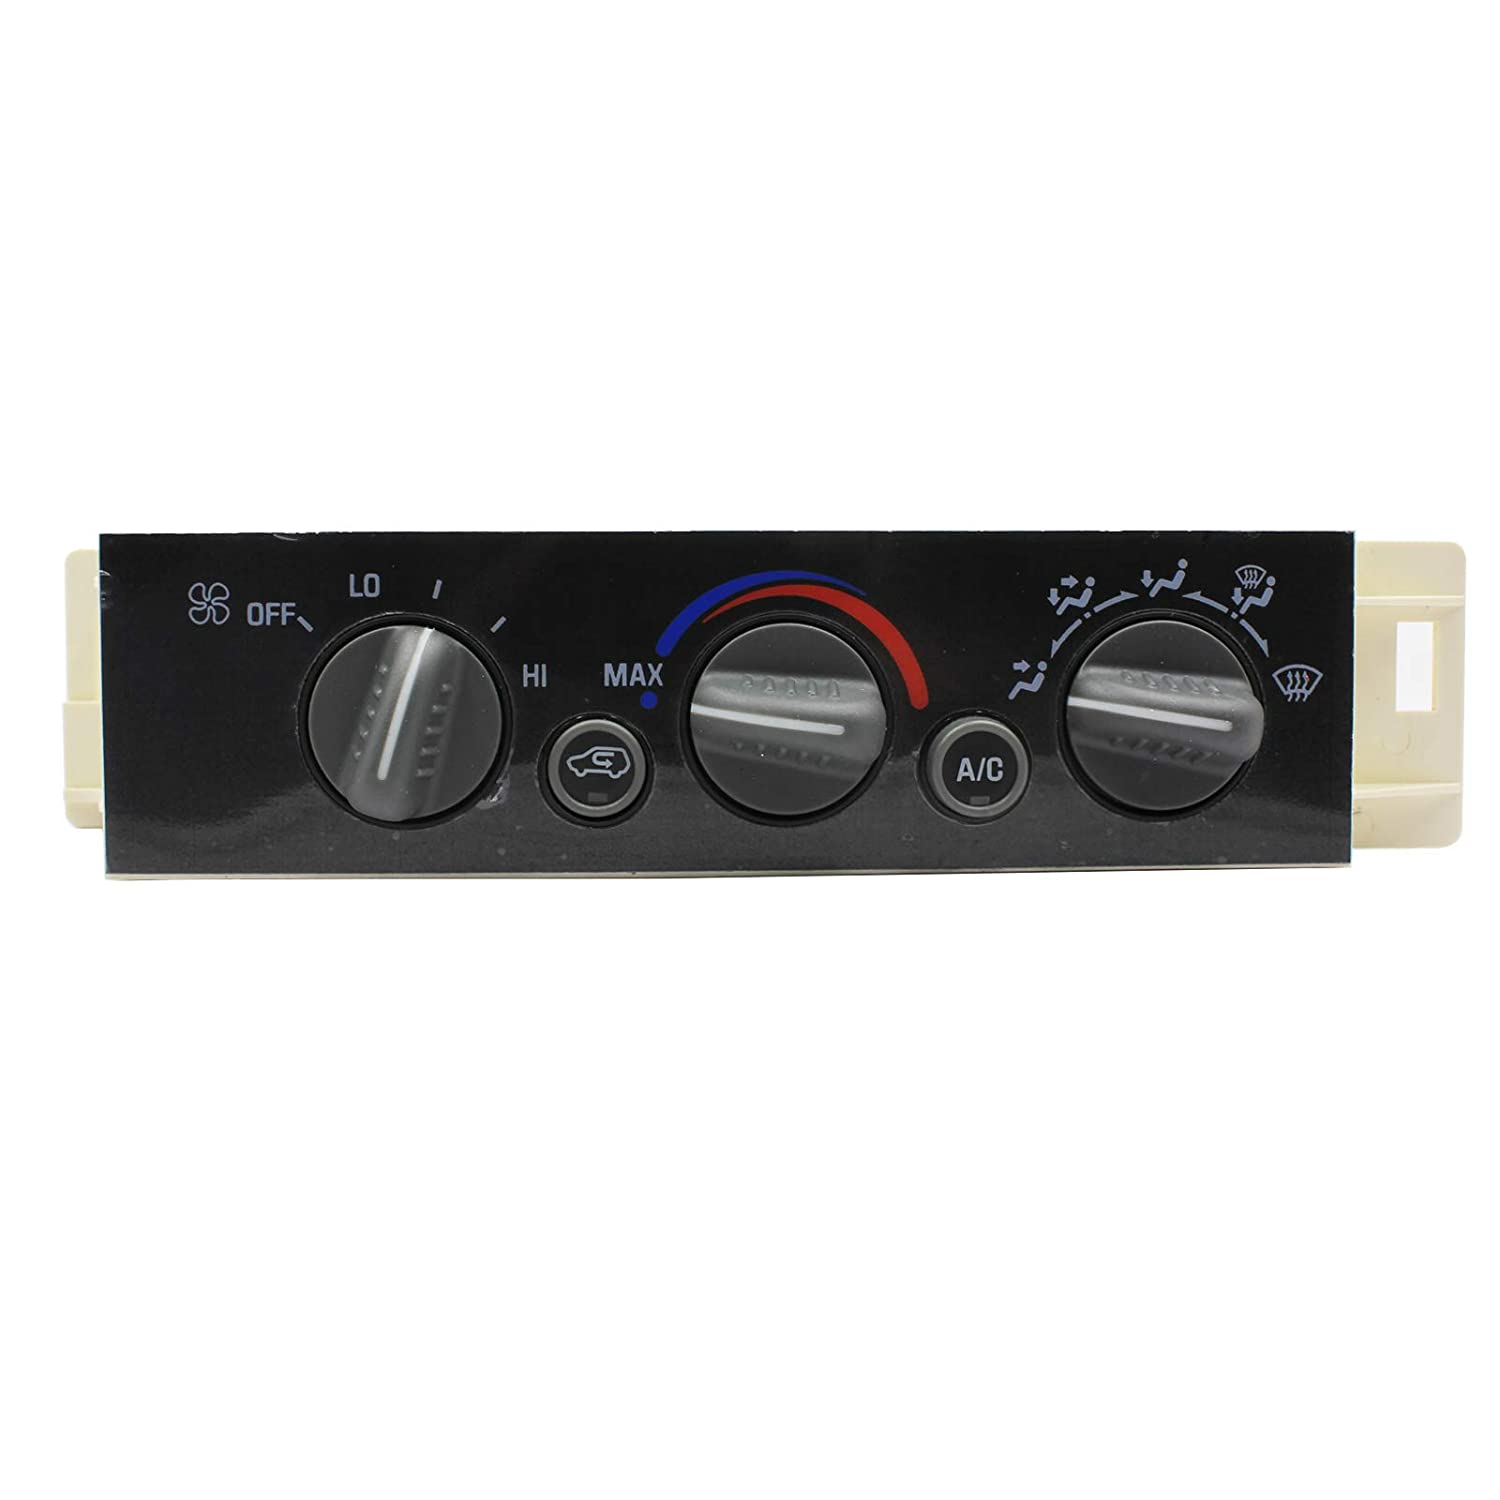 LAFORMO Heater A//C Control Panel w//o Rear Window Defogger Fits Chevy GMC Pickup Truck 9378815 599-007 16238895